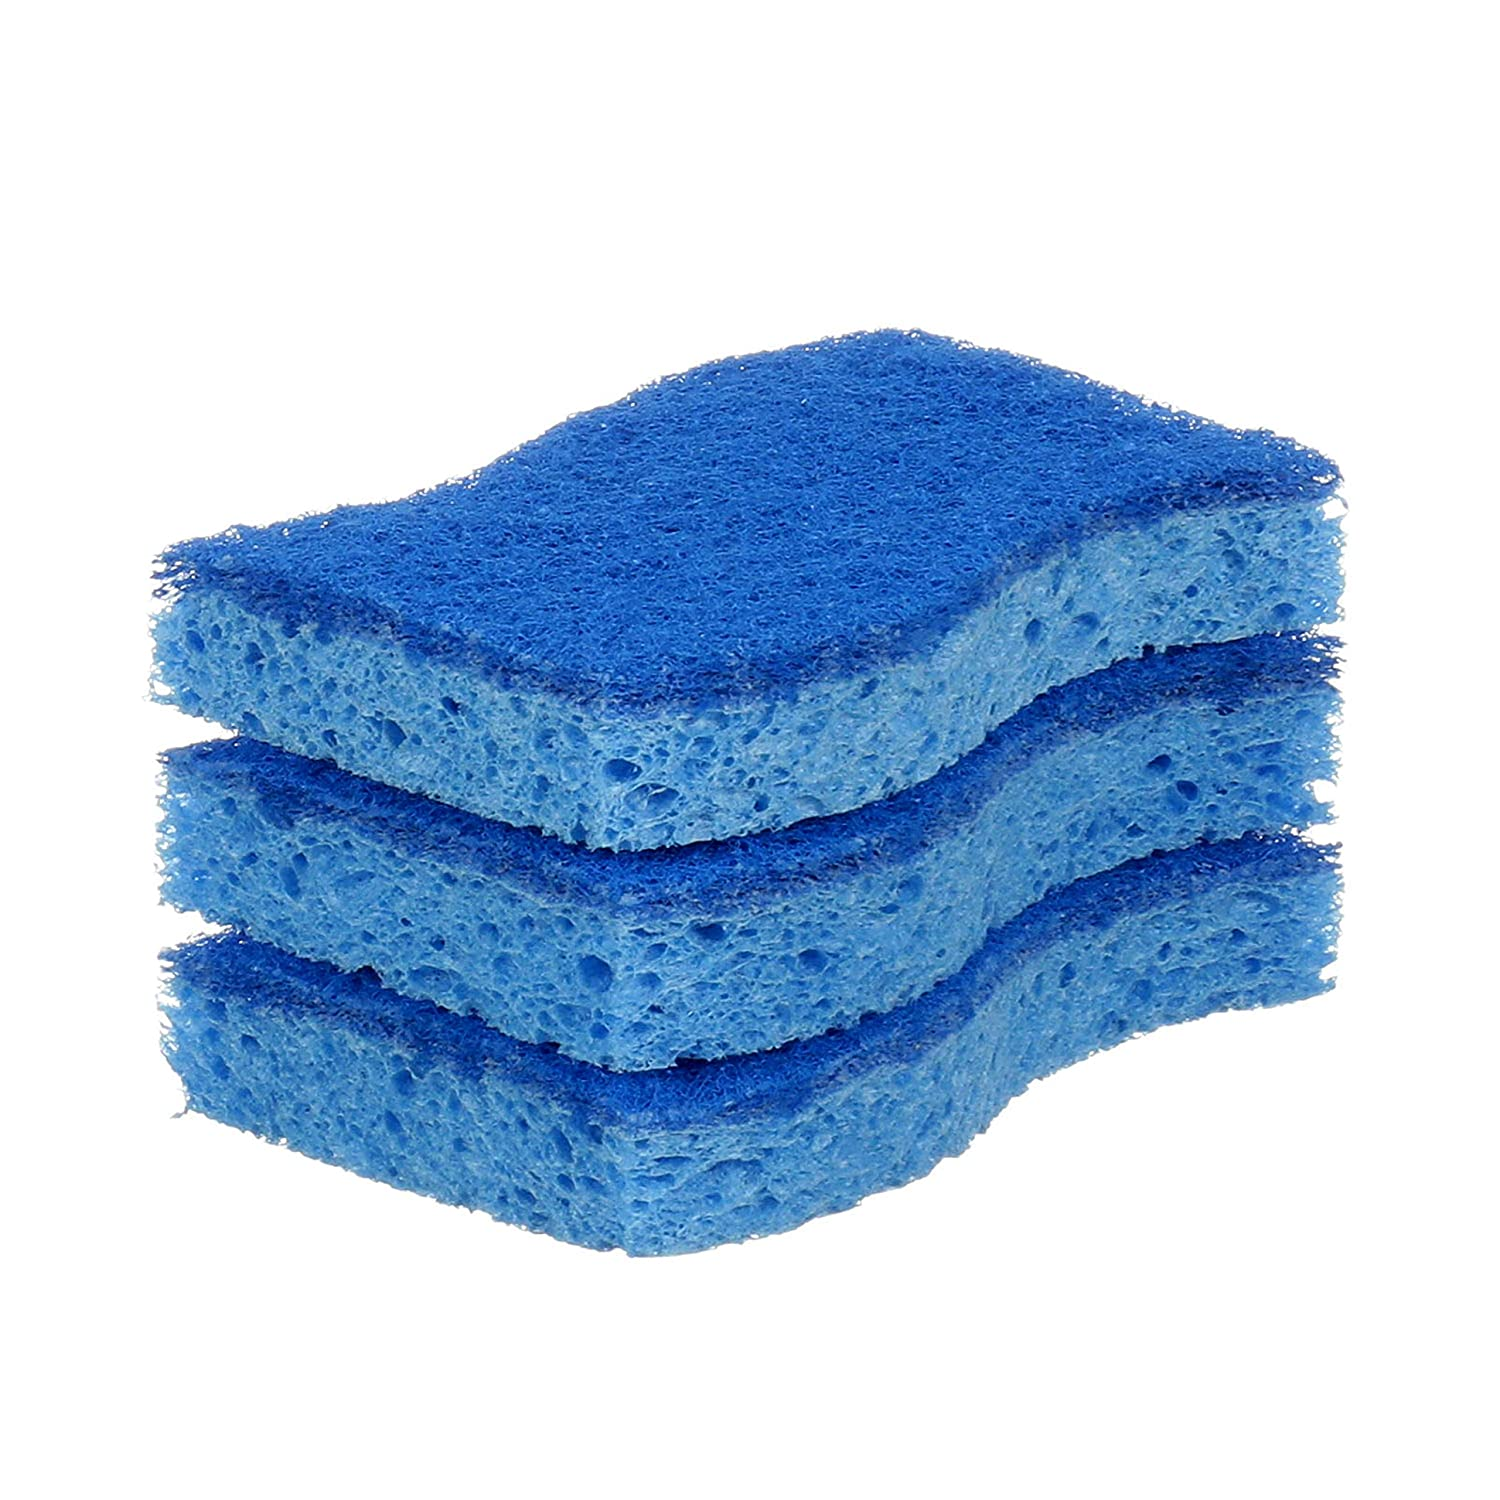 10Pcs Non-Scratch Scrub Sponge, Cleaning Power for Everyday Jobs, Wood Pulp Cotton